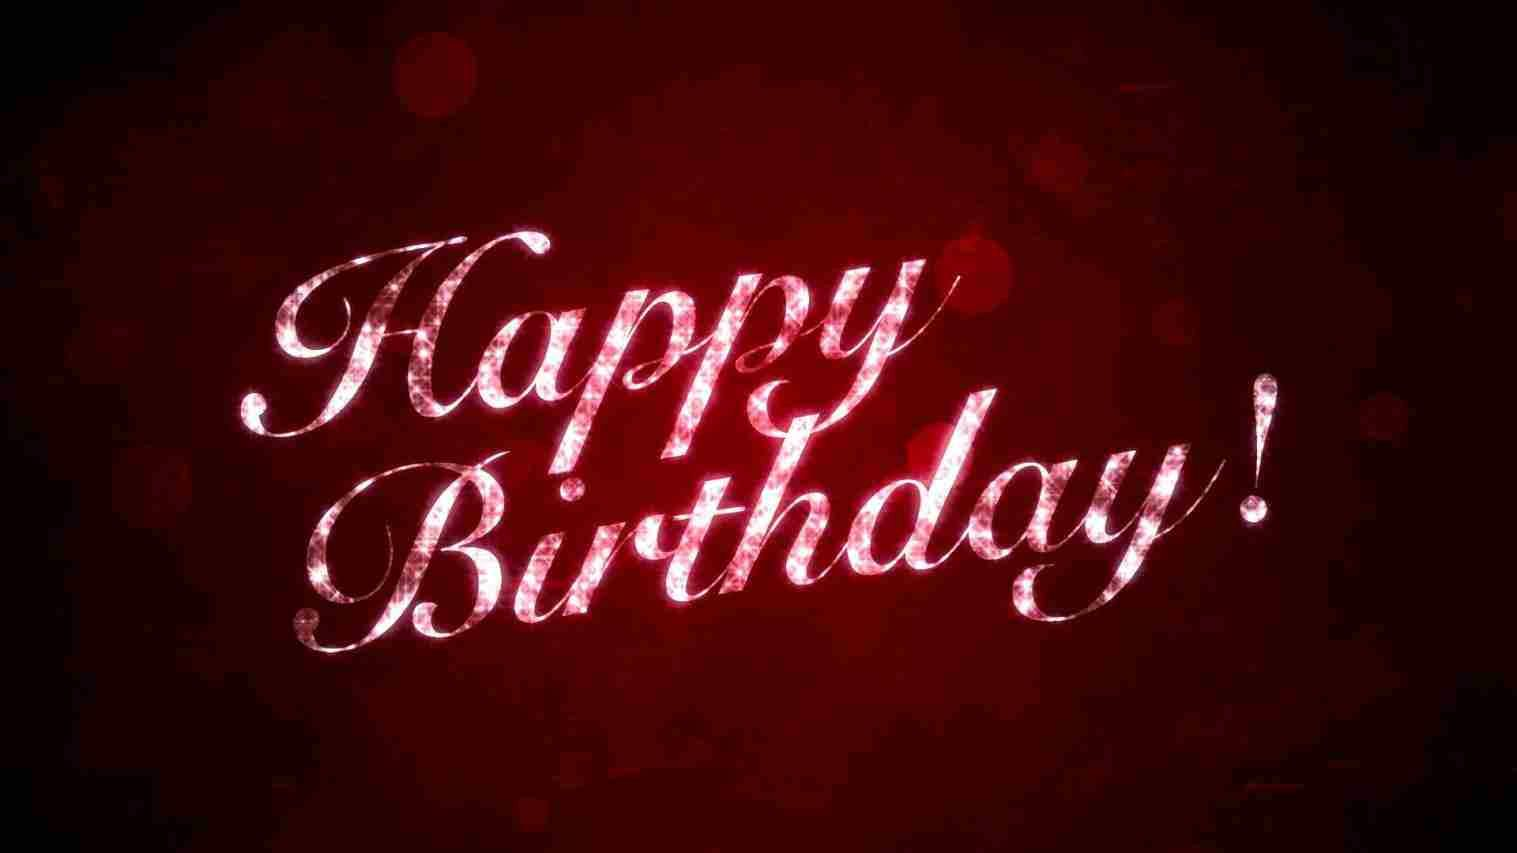 Birthday Wishes Spiritual Quotes ~ Cool spiritual birthday quotes ideas modern spiritual birthday